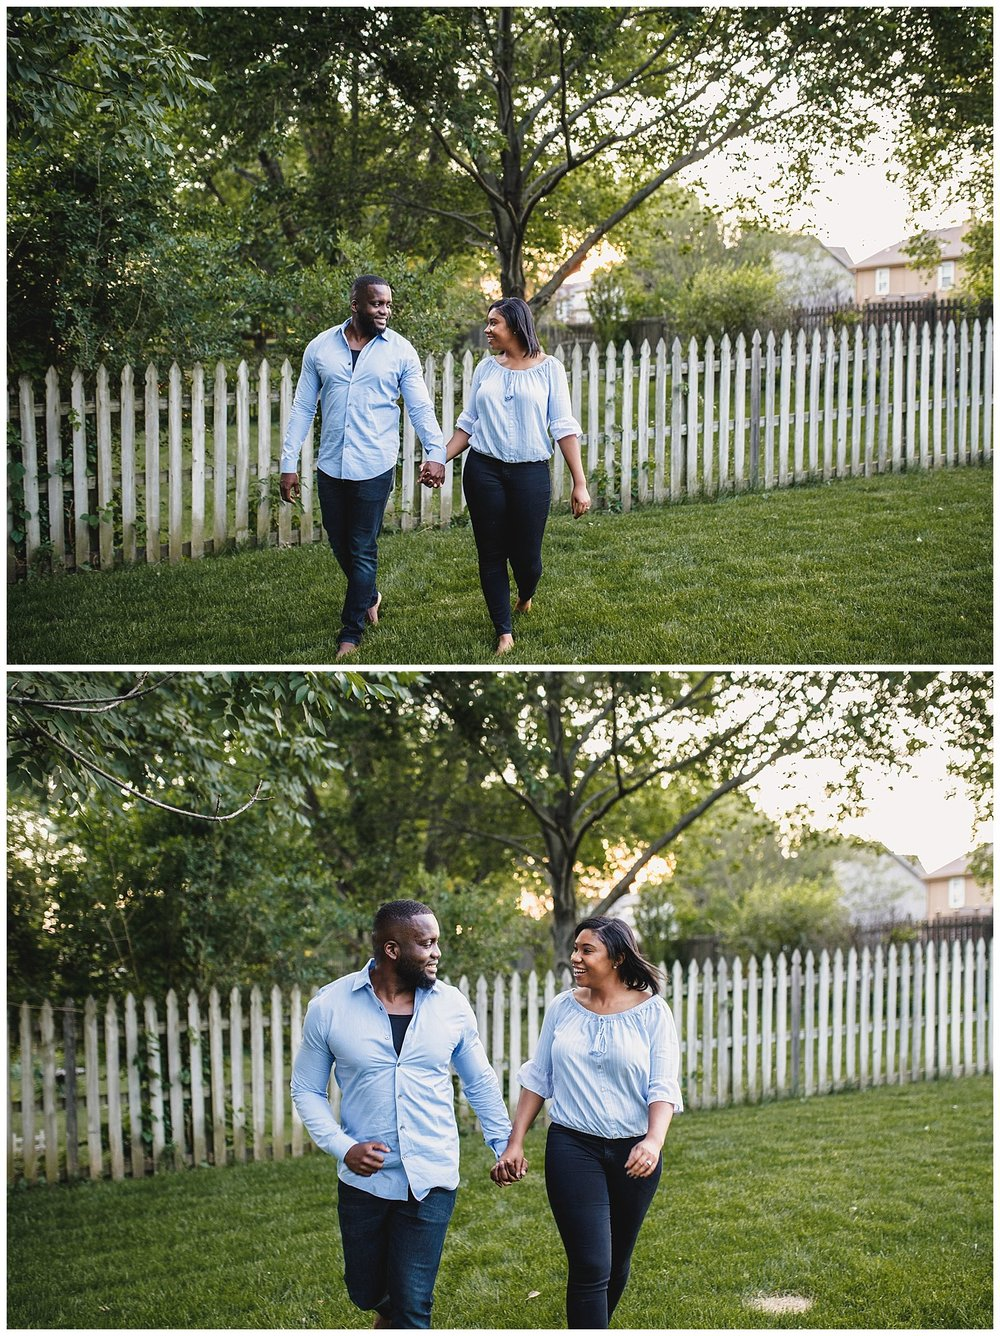 Kansas_City_Engagment_In_Home_Session_Kelsey_Diane_Photography_Wedding_Photographer_Engagment_Photographer_0126_Bri_Prime.jpg